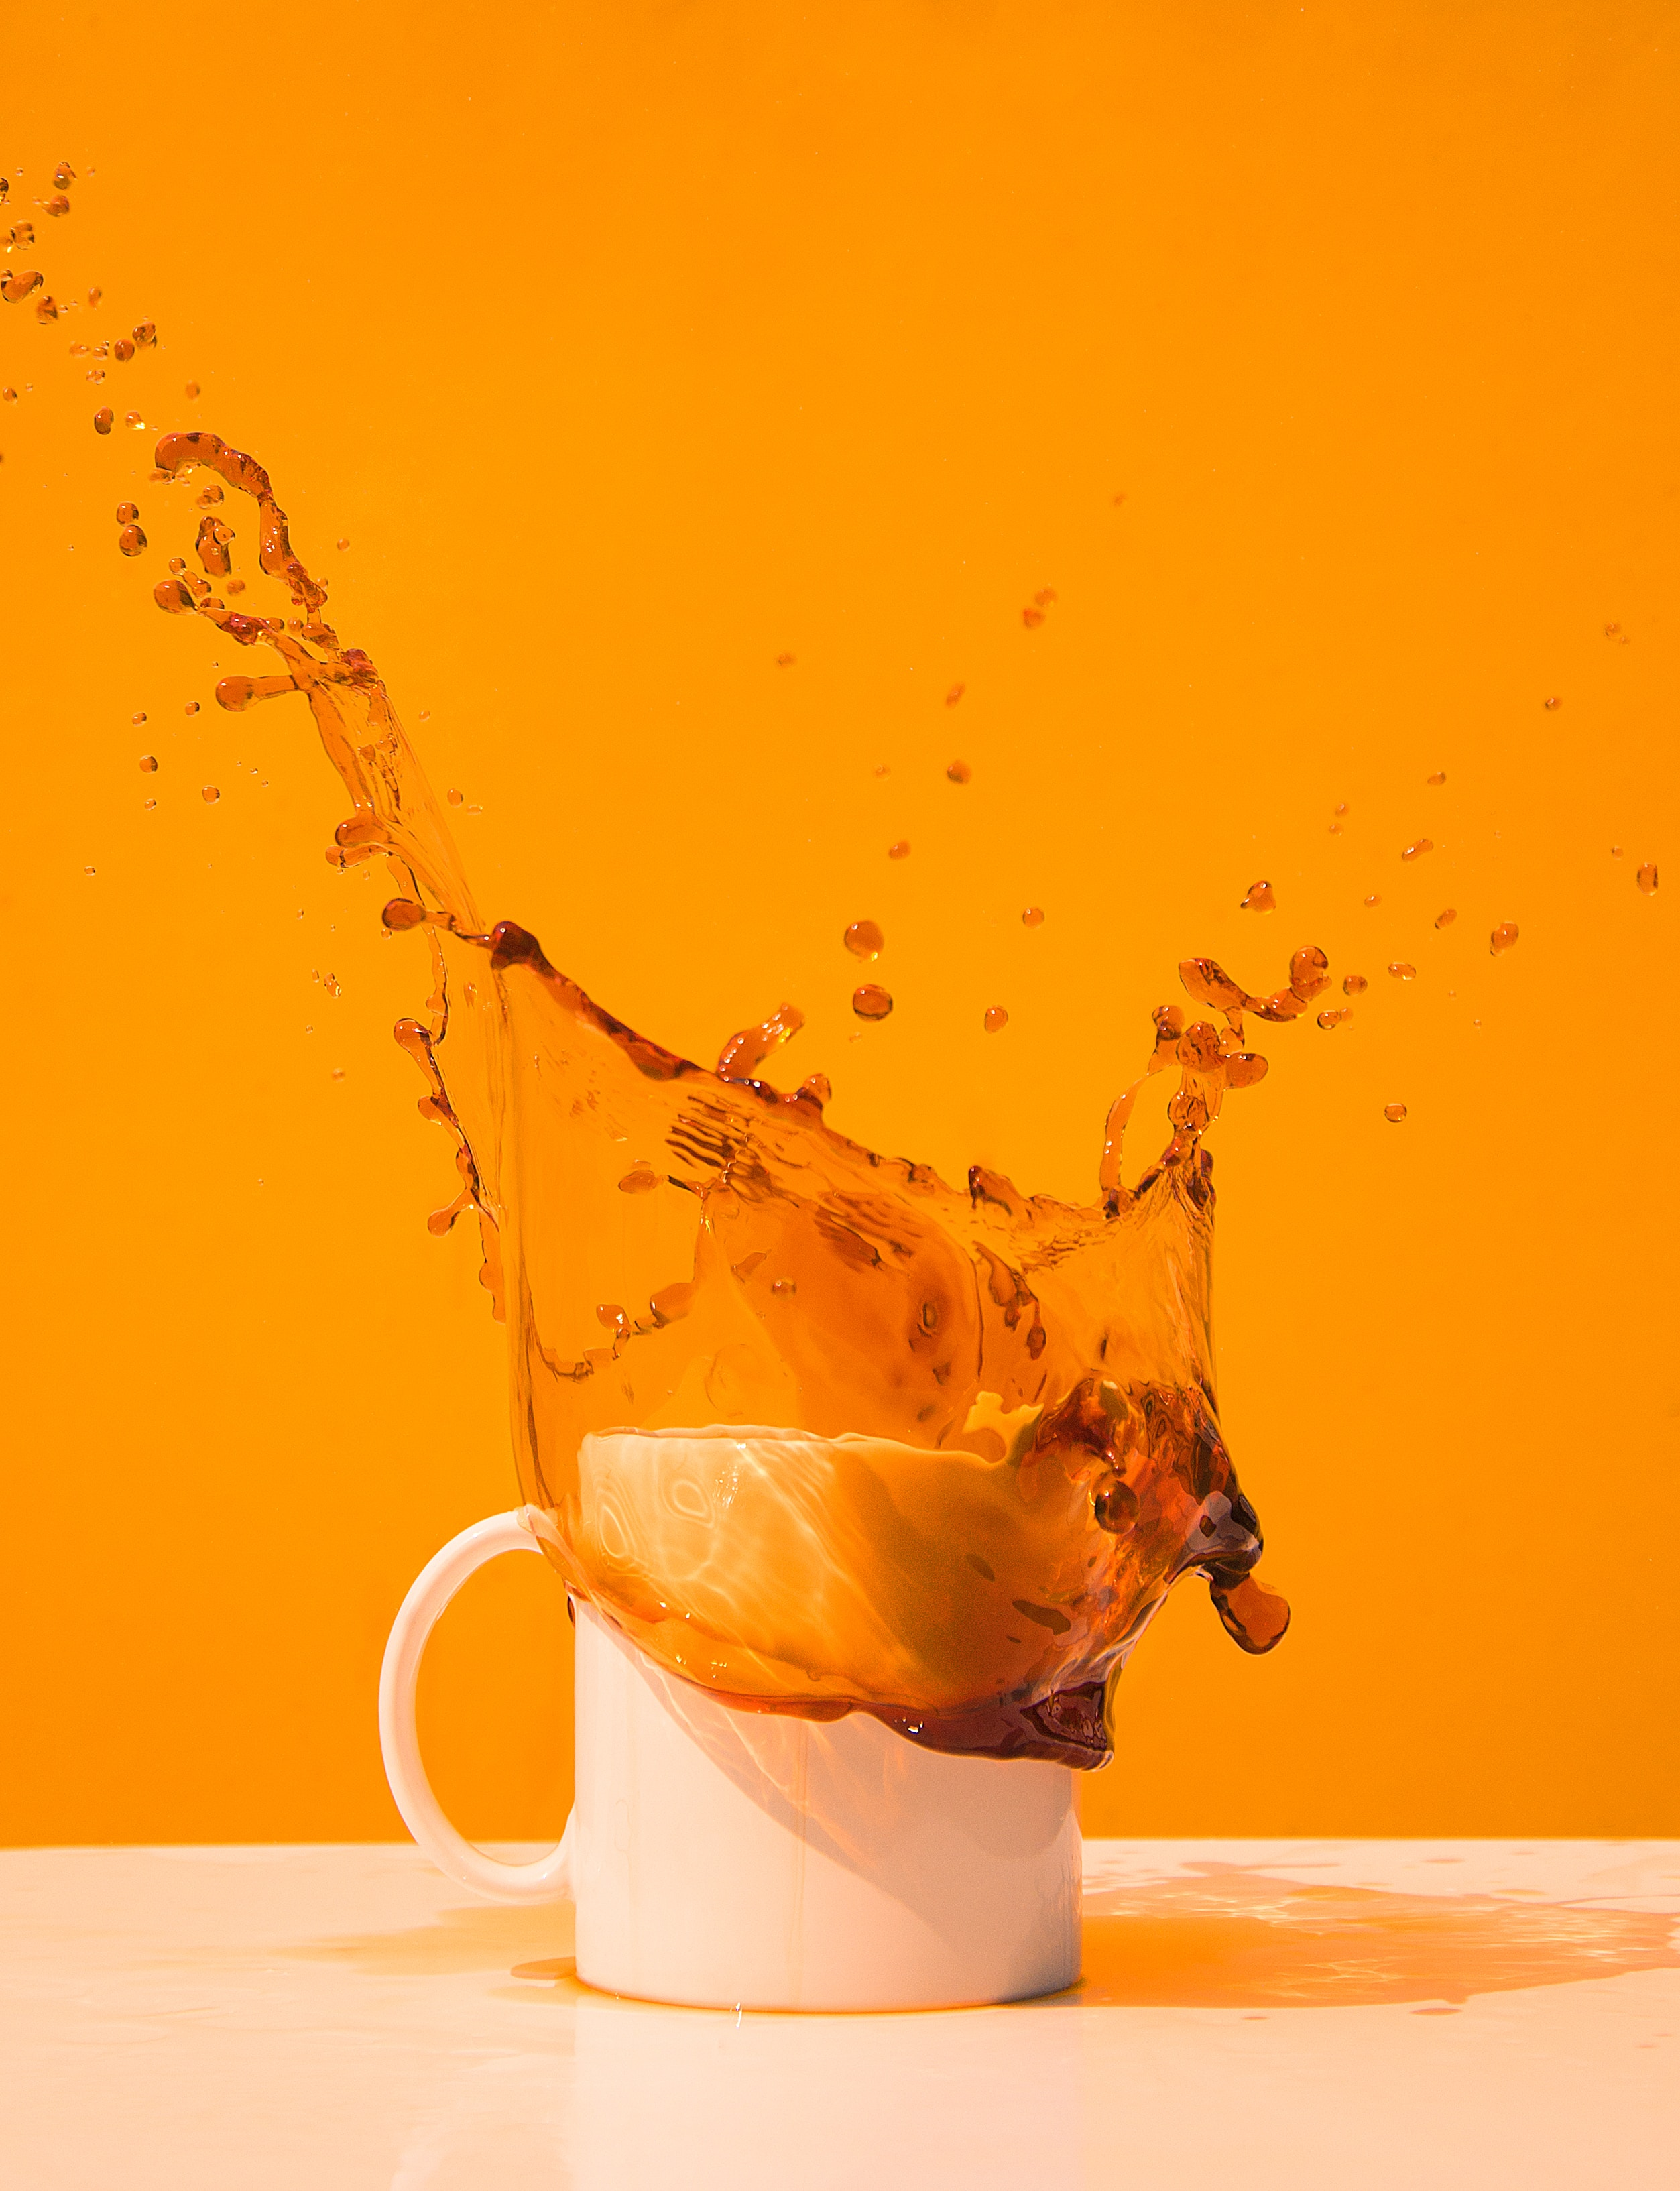 63912 free wallpaper 360x640 for phone, download images Coffee, Food, Cup, Spray, Splash, Drink, Beverage 360x640 for mobile